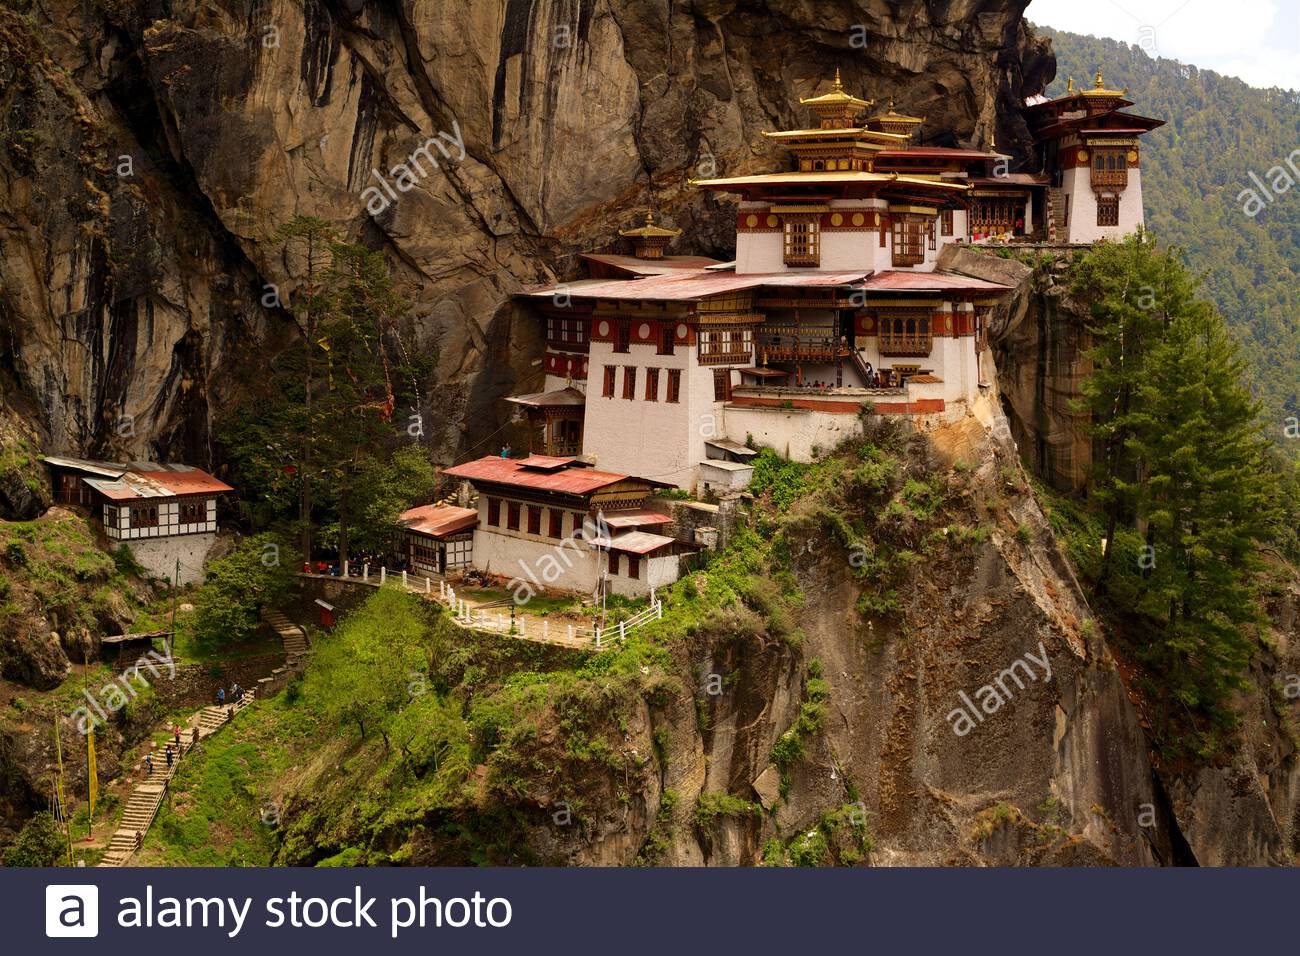 Taktsang Monastery, also known as Taktsang Lhakhang, the Tiger's Nest and Paro Taktsang, located on a cliffside above Paro Valley in Bhutan Stock Photo